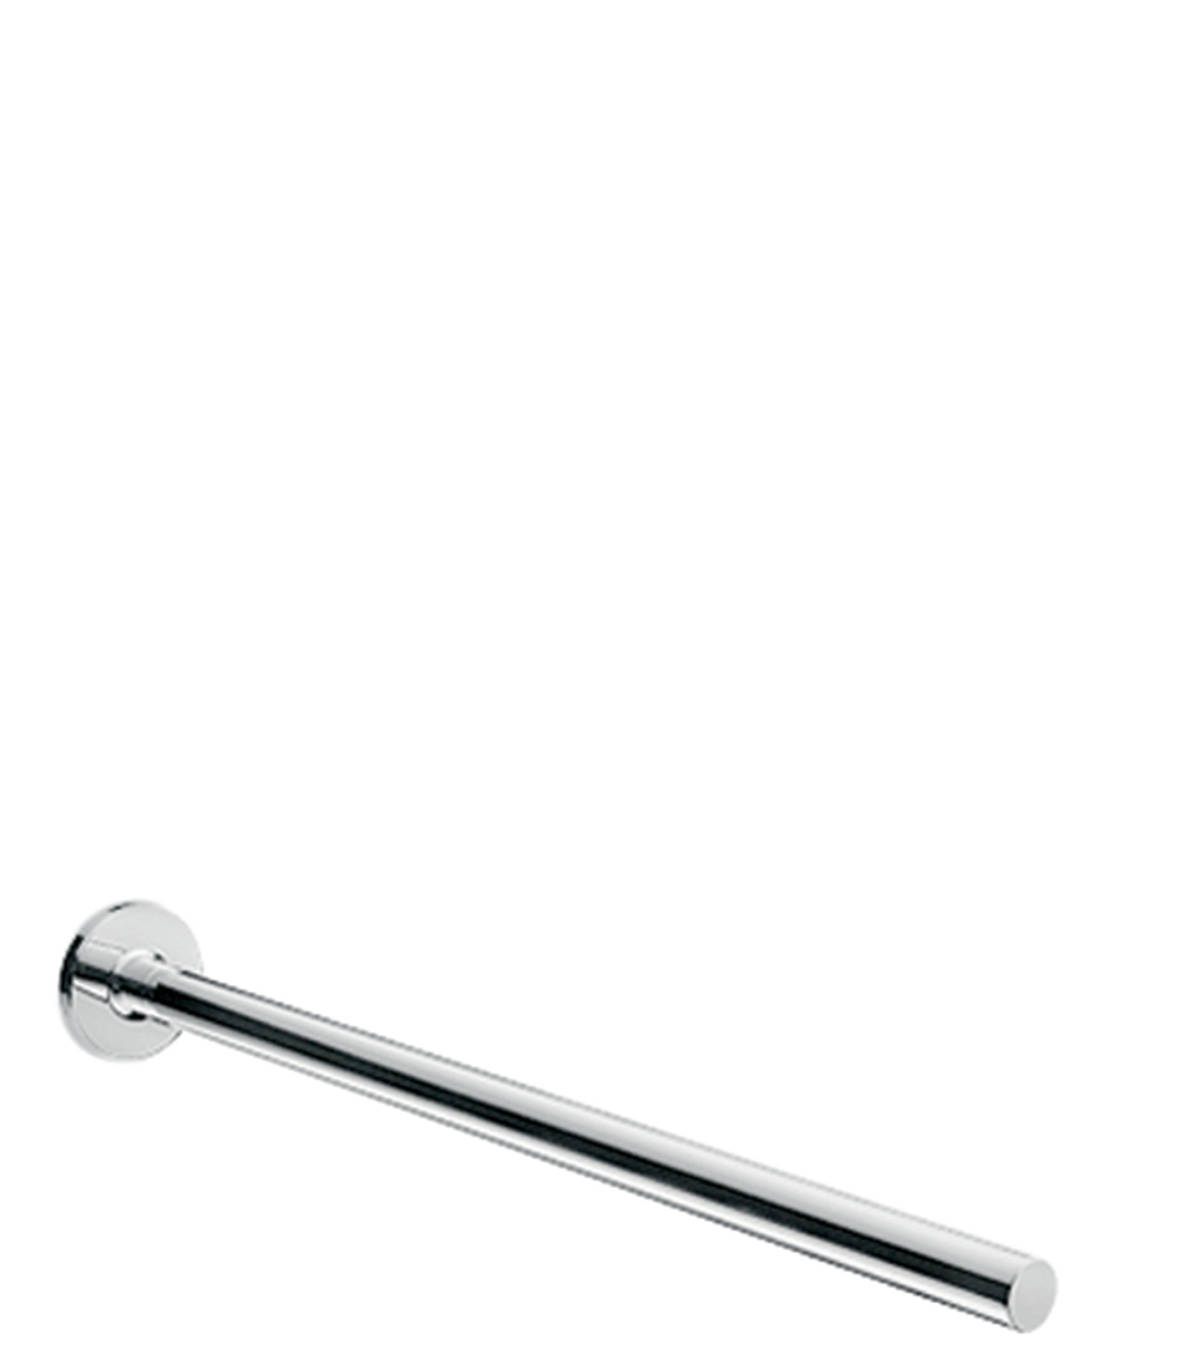 Towel holder, Chrome, 41520000